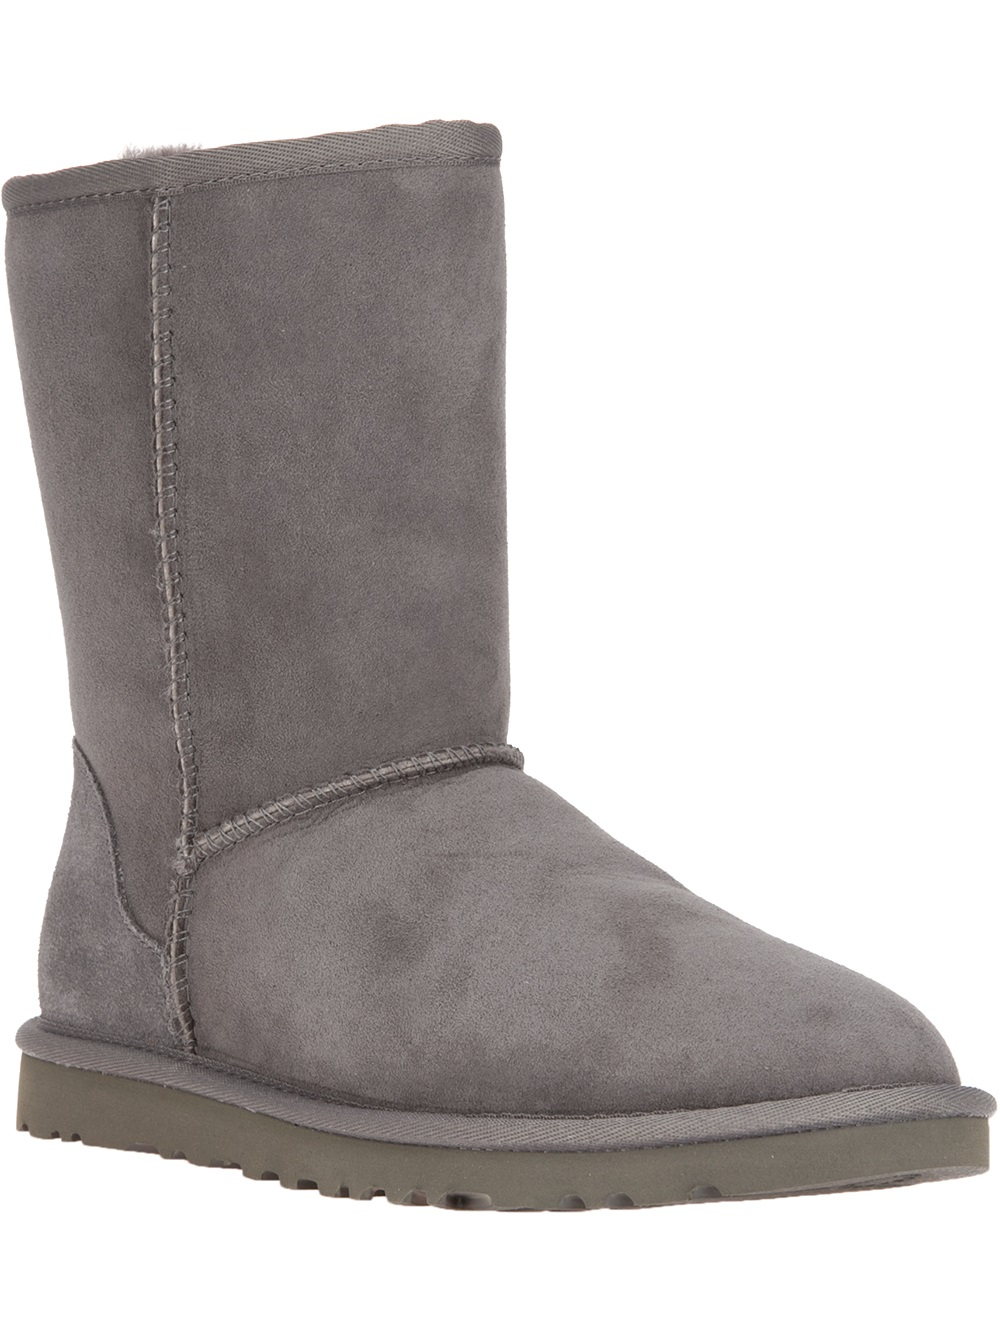 grey ugg style boots